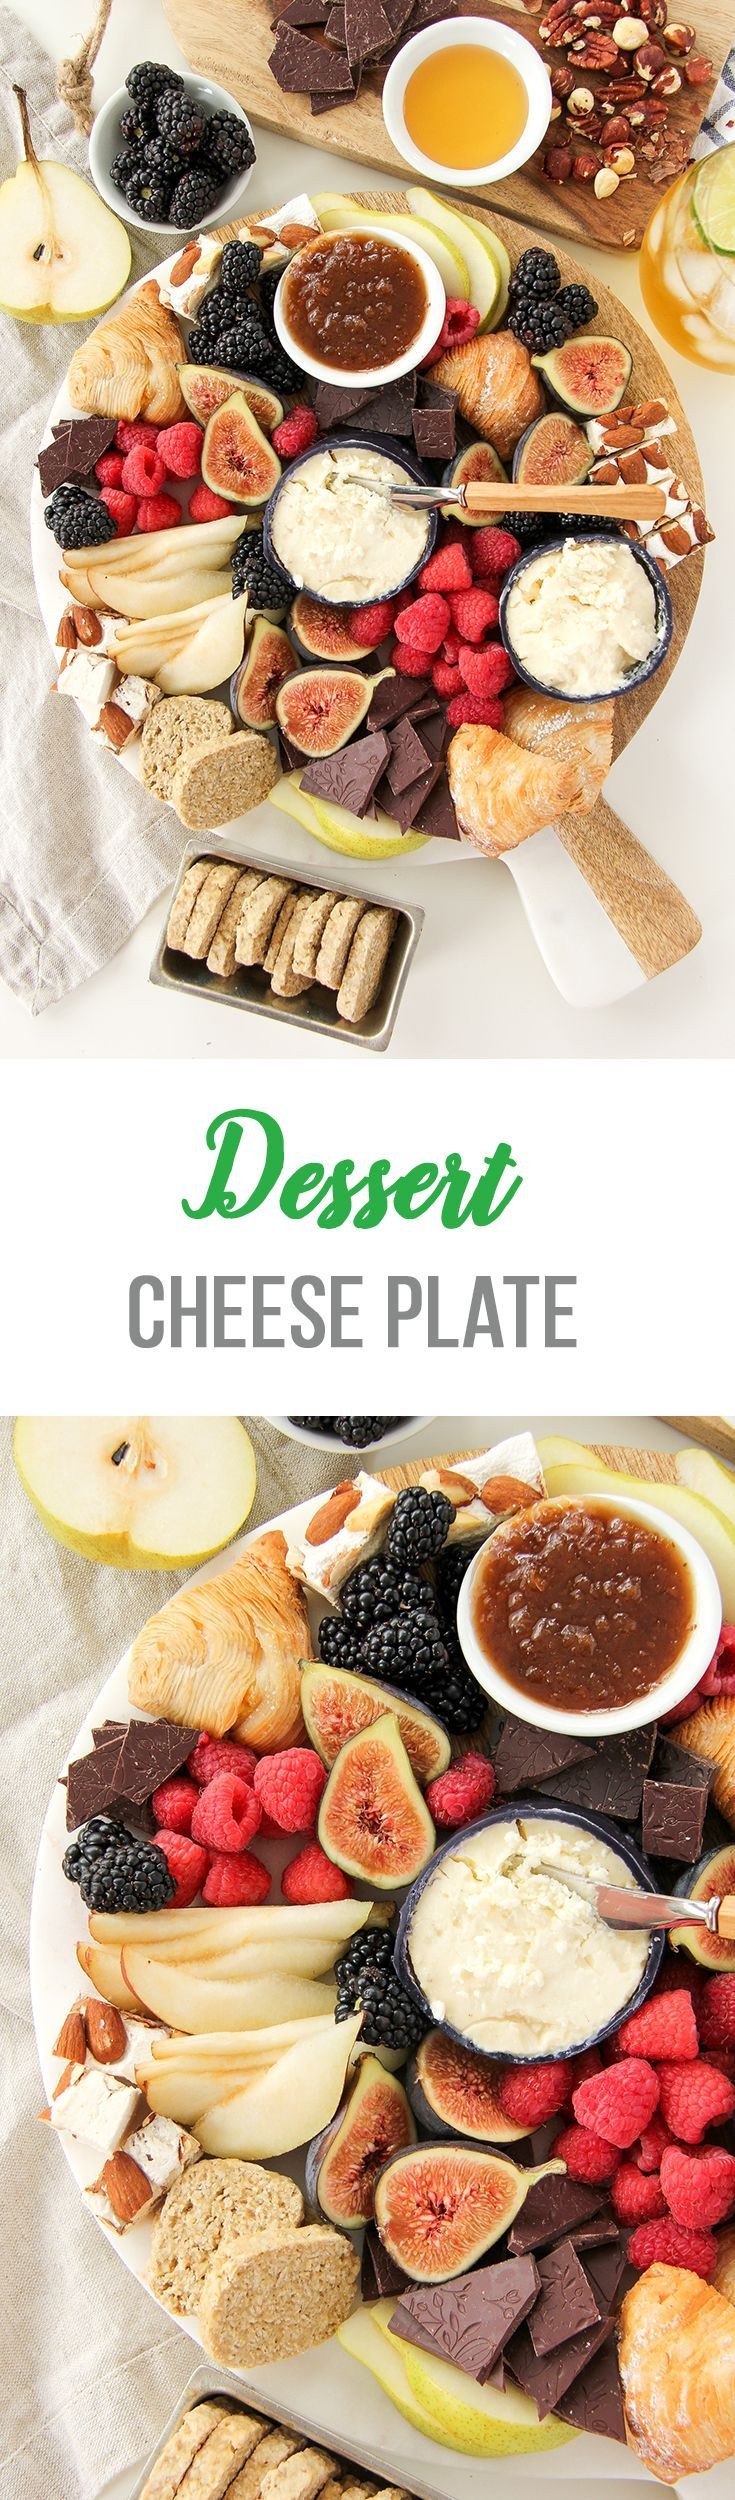 Think outside the charcuterie plate and make a Dessert Cheese Plate! This plate is loaded up with delicious cheese chocolate nuts and fruit! & Think outside the charcuterie plate and make a Dessert Cheese Plate ...